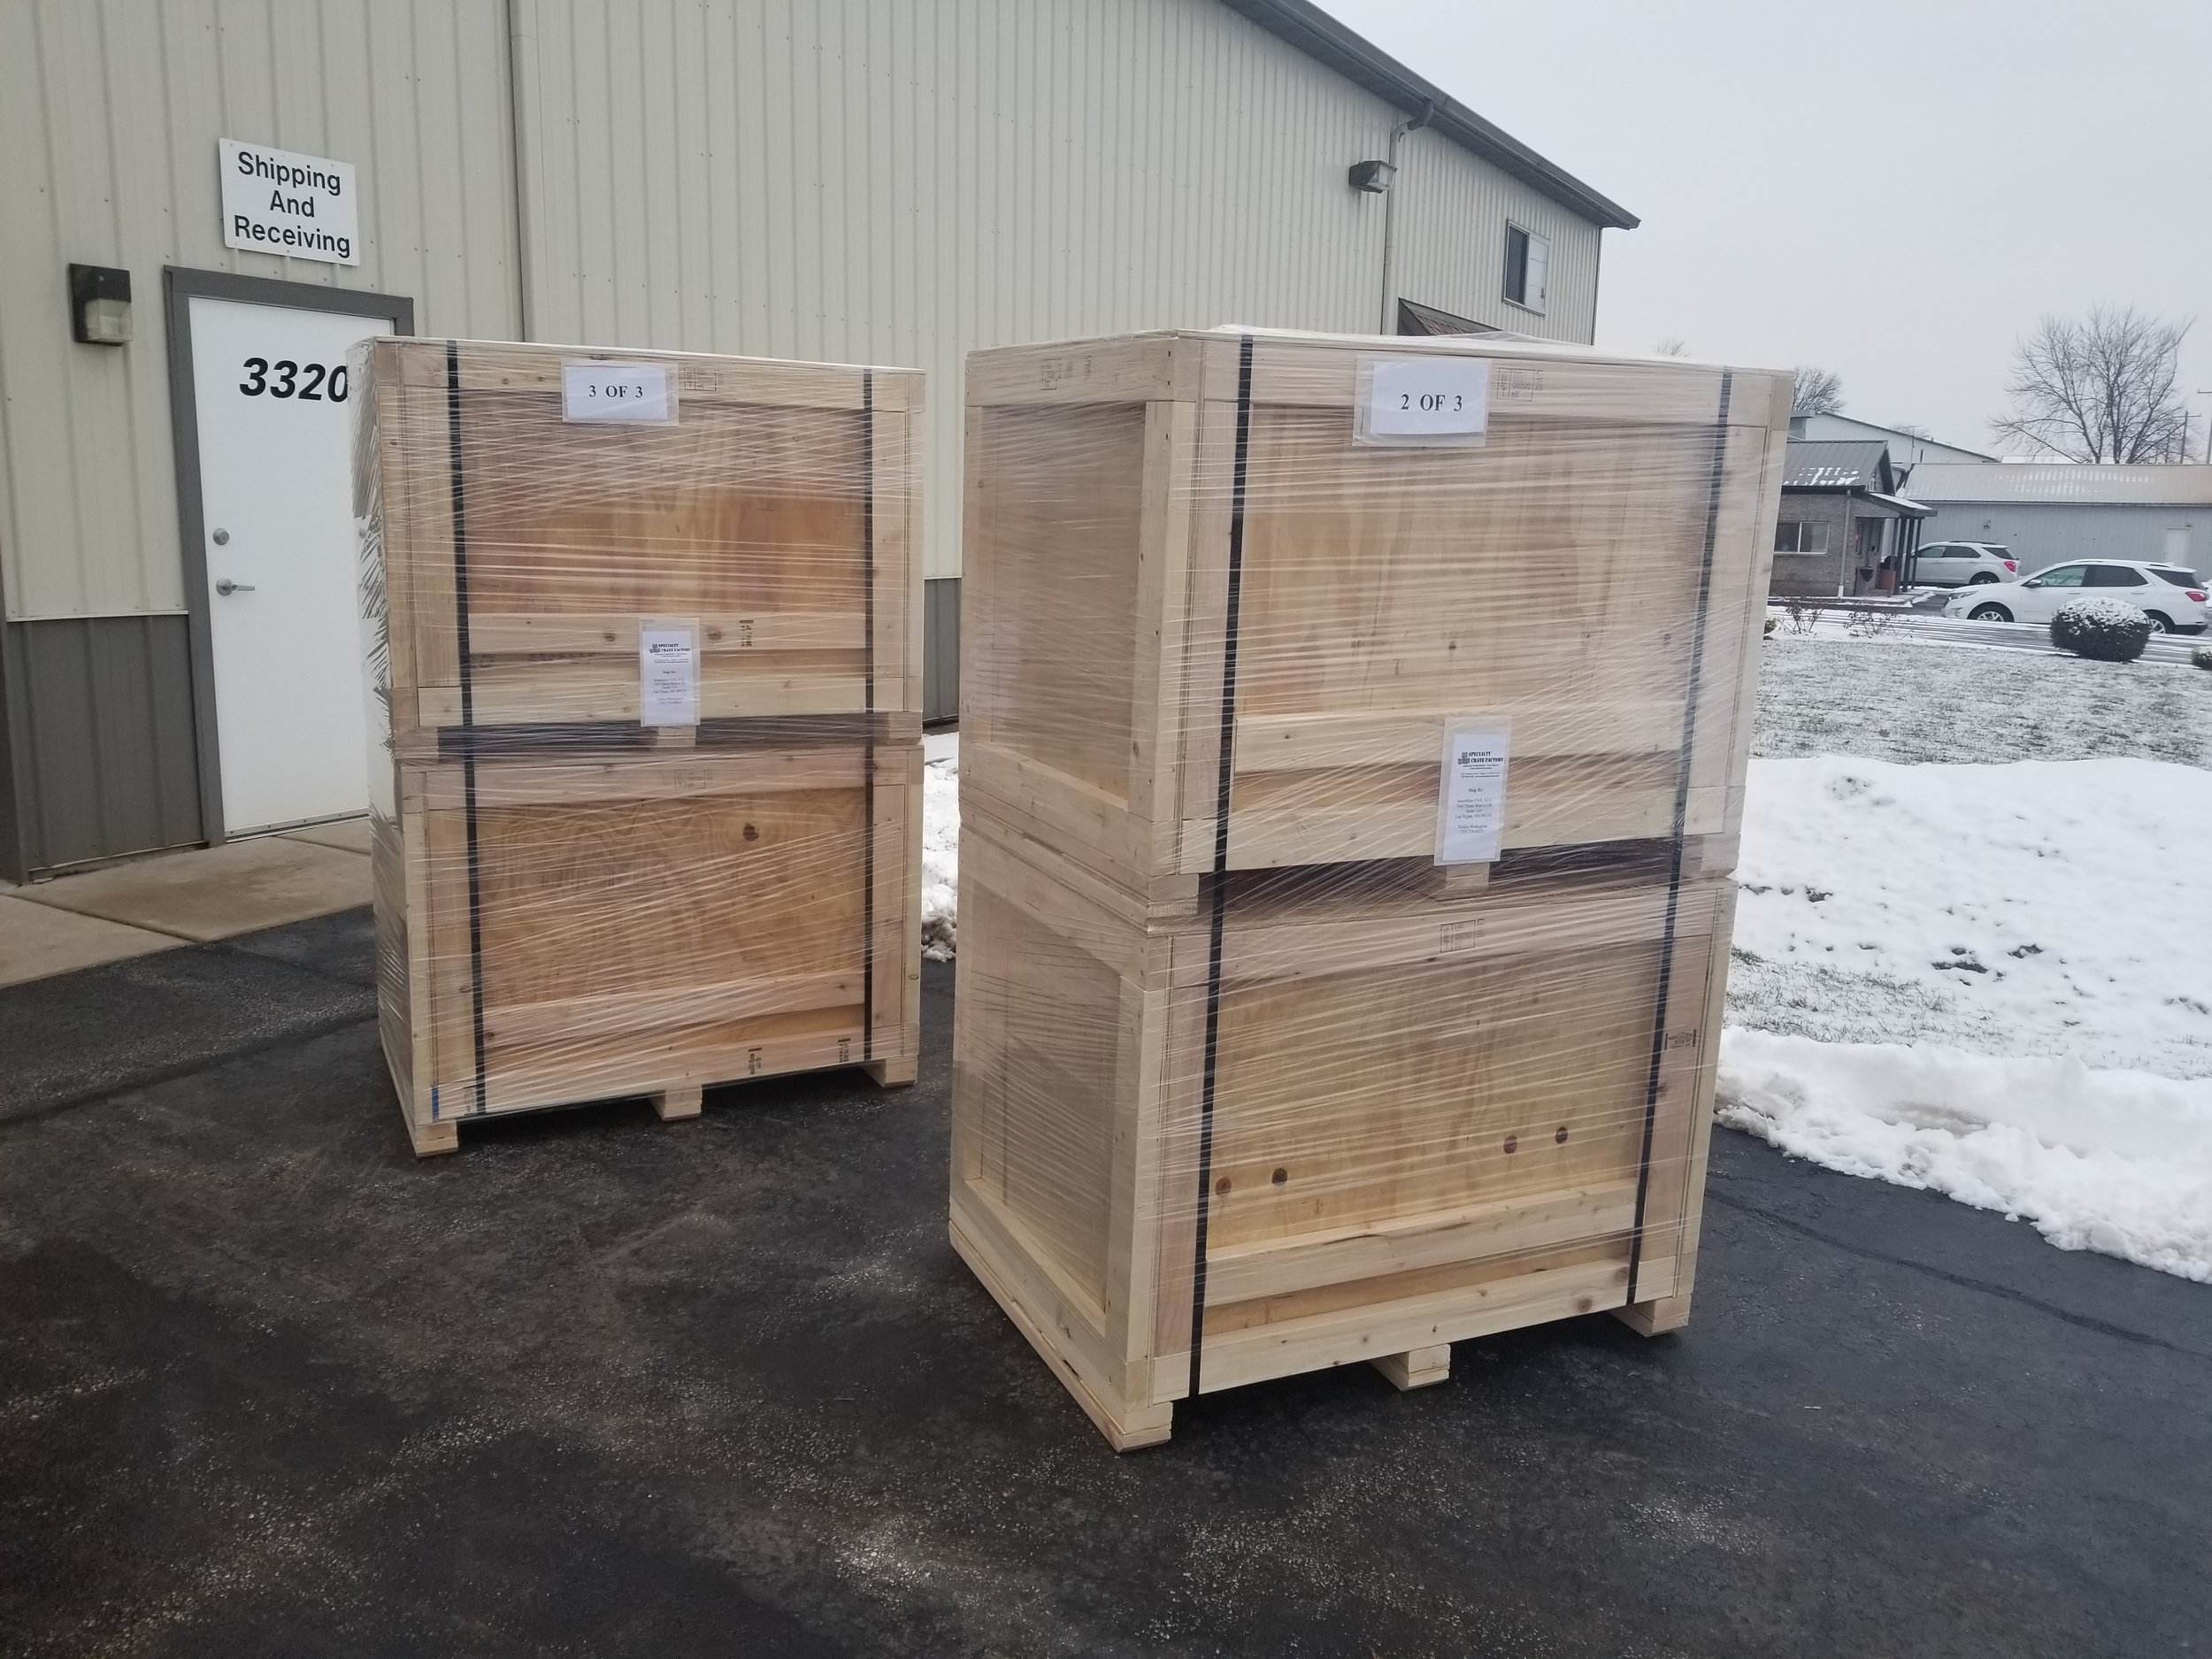 Ready for pickup via YOUR CARRIER or we can ship it for you.